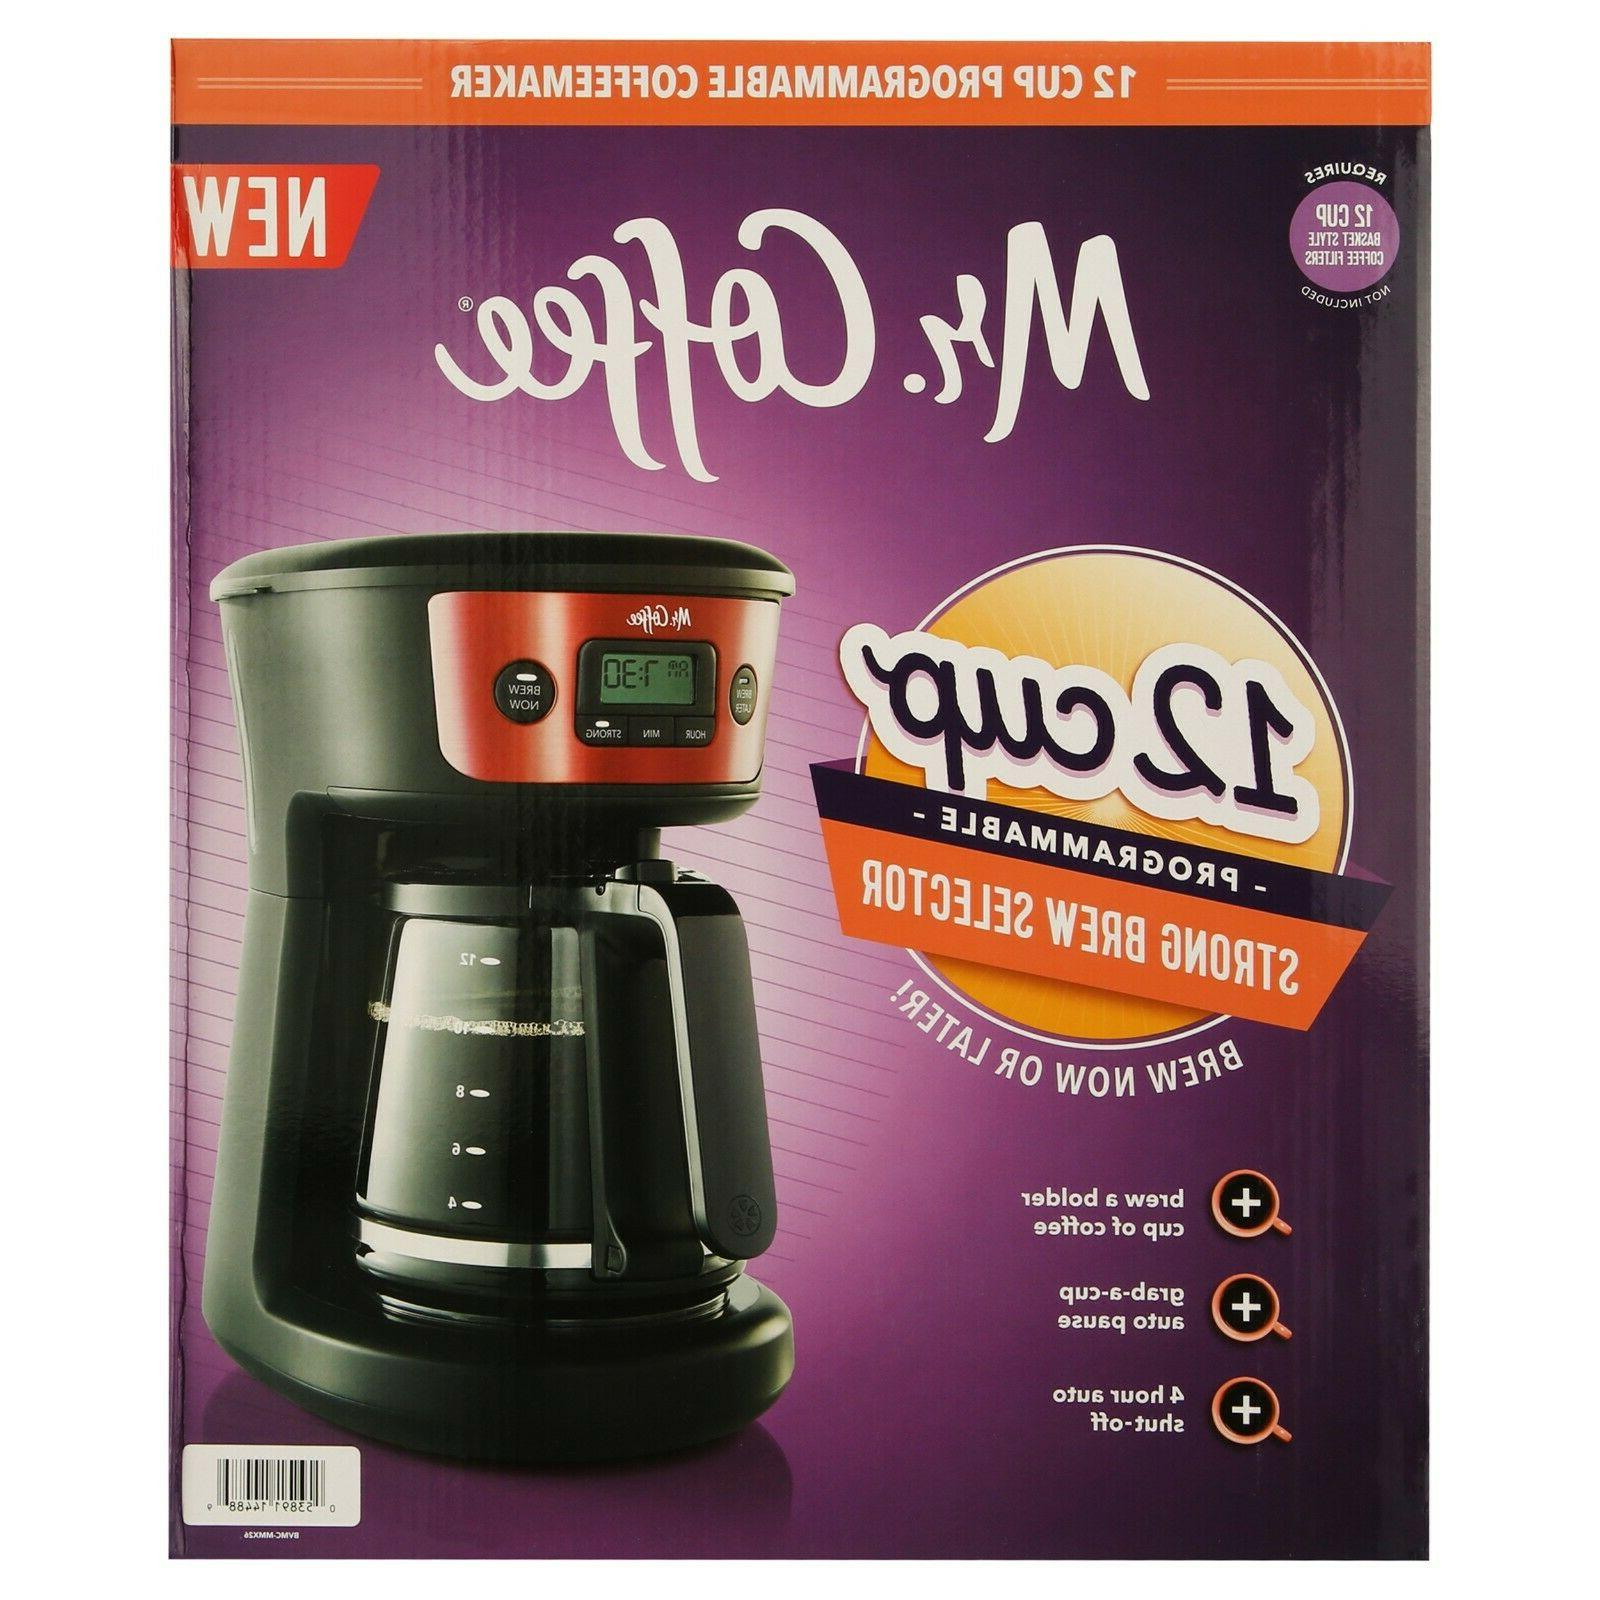 Mr. Coffee 12-Cup Coffeemaker, Strong